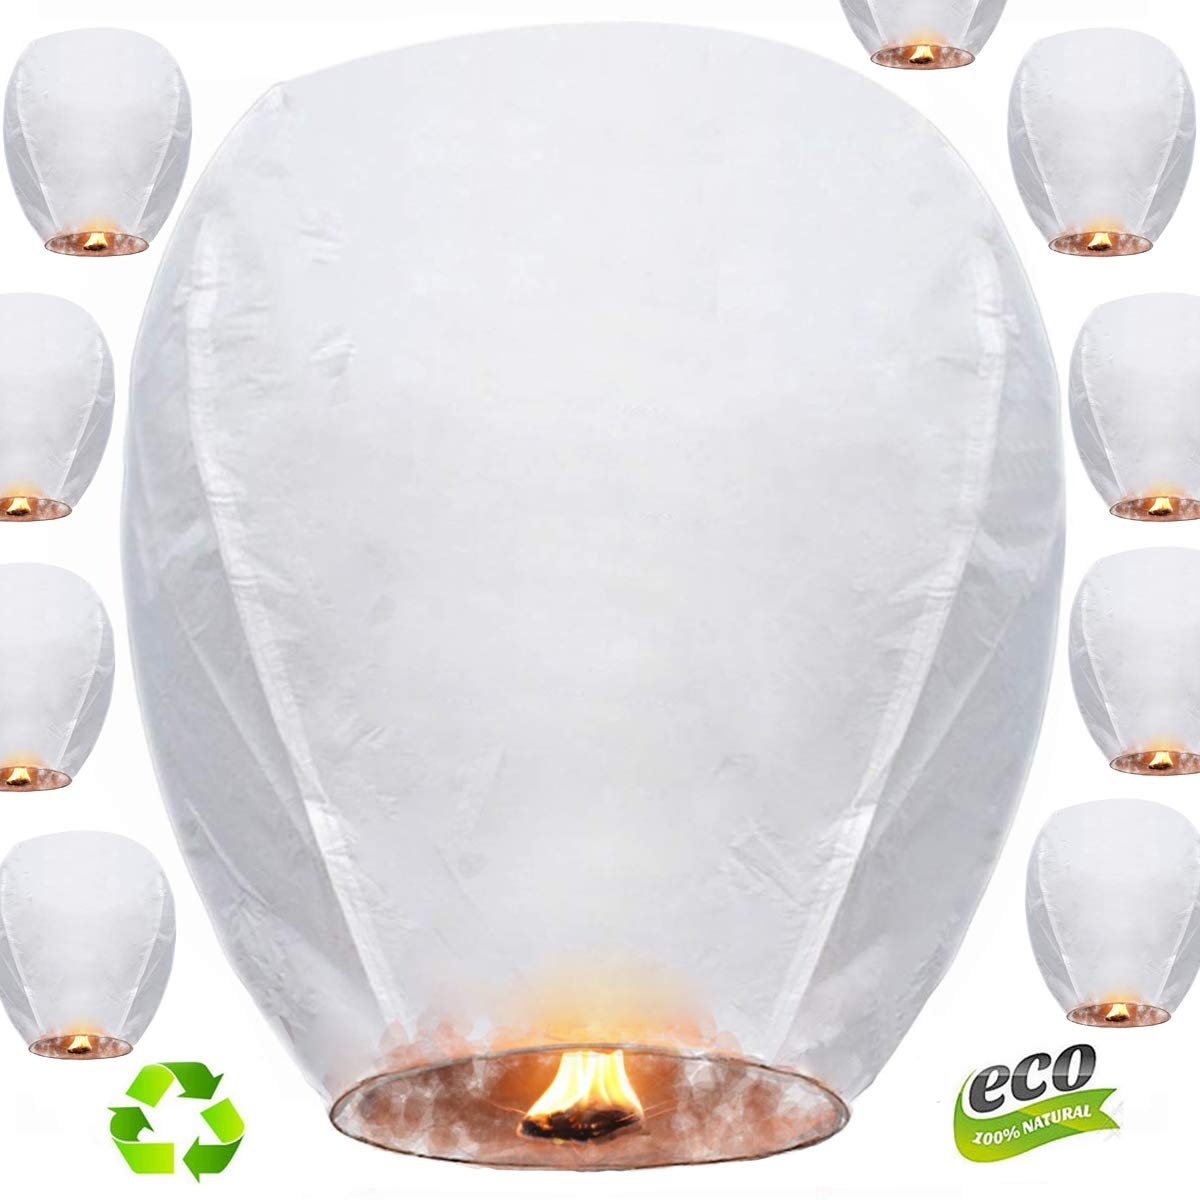 Nuluphu Sky Lanterns 10-Pack,for Any Birthdays, Parties, New Years,Funeral, Memorial Ceremonies, and More(White) by Nuluphu